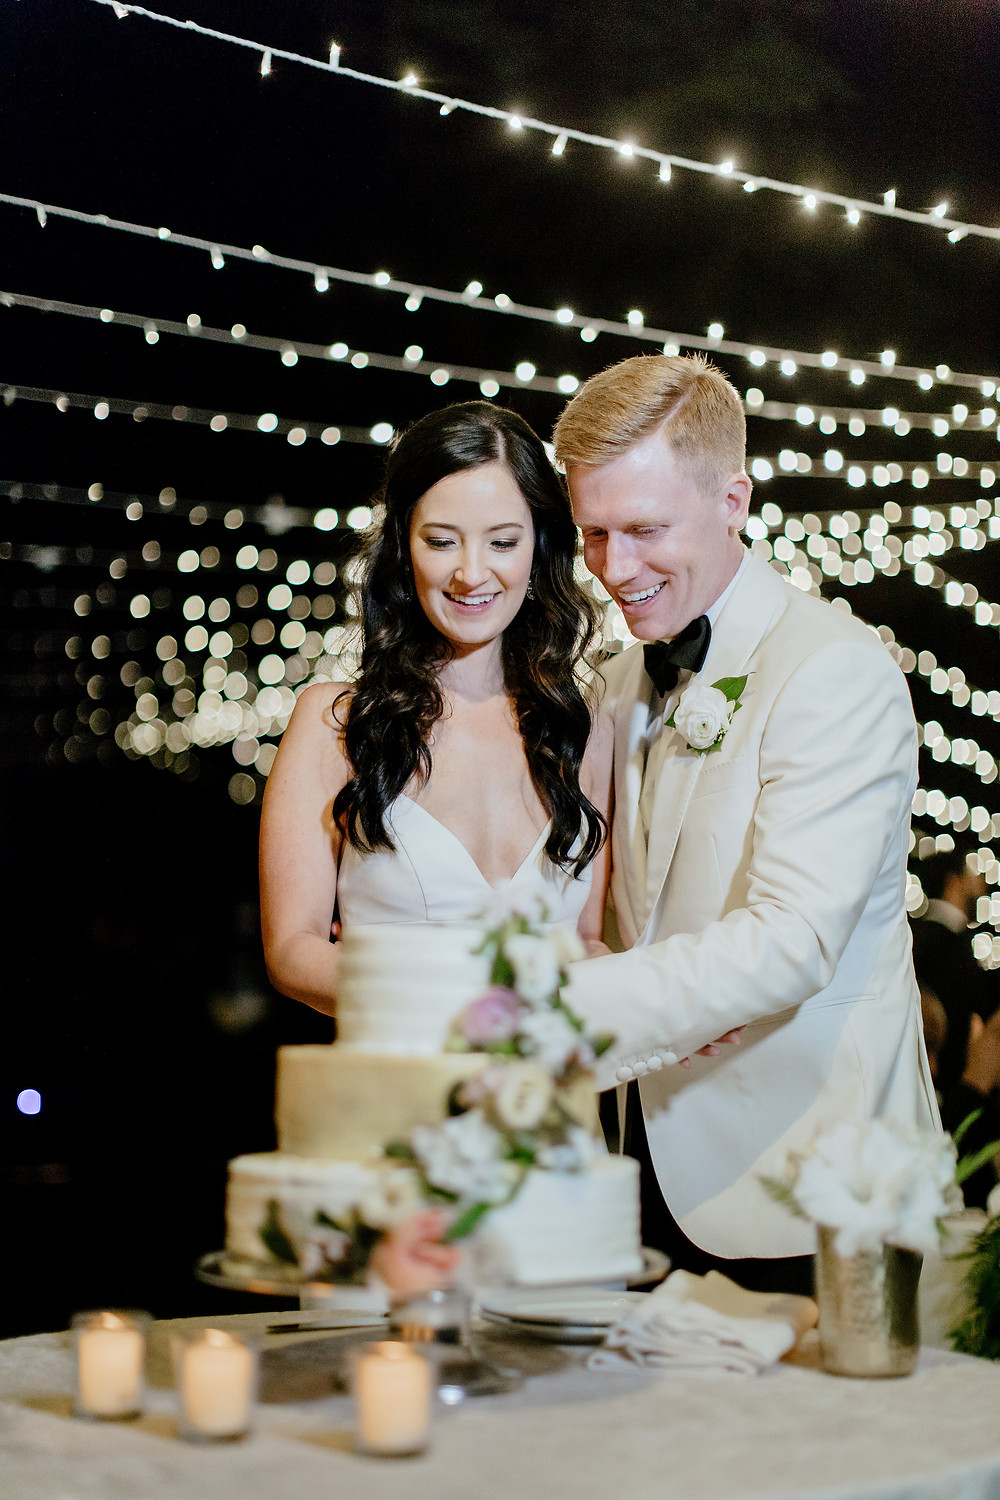 Bride and Groom cutting cake under white twinkle lights